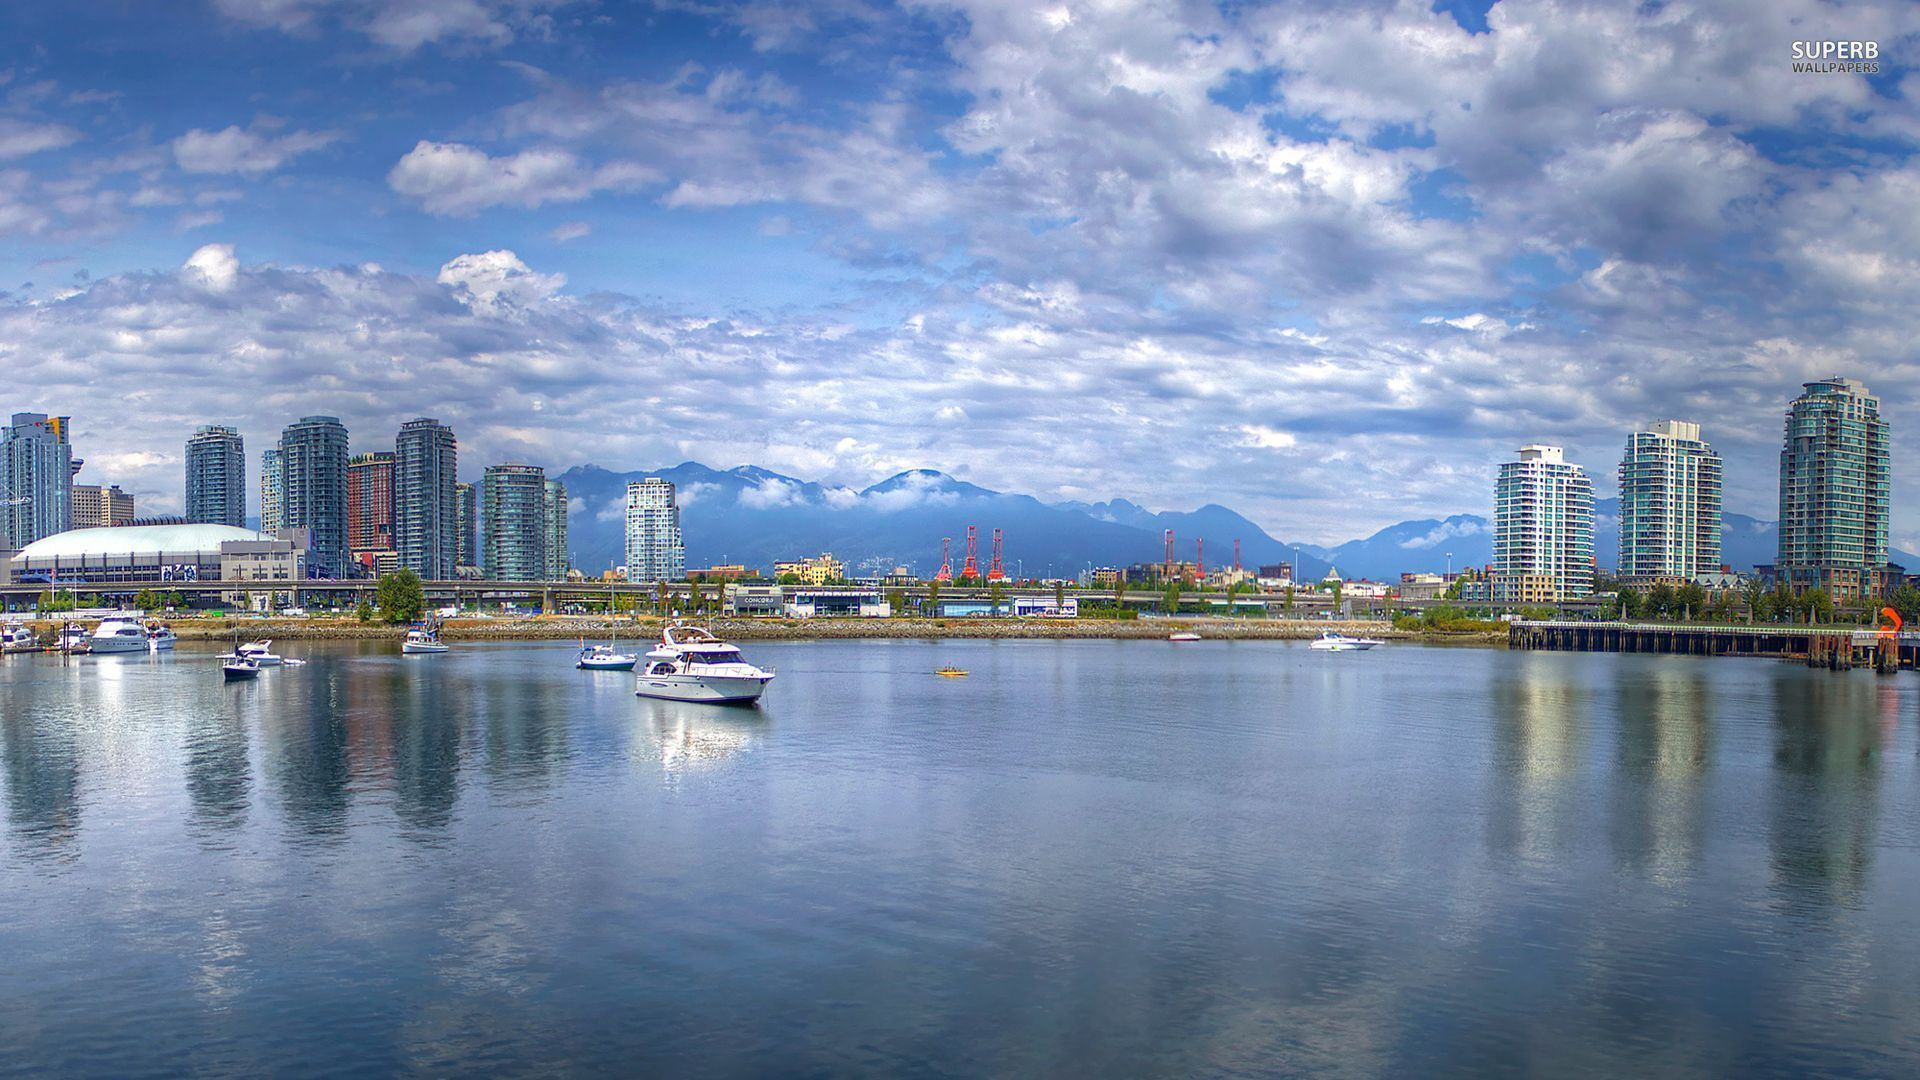 vancouver skyline wallpapers widescreen - photo #15